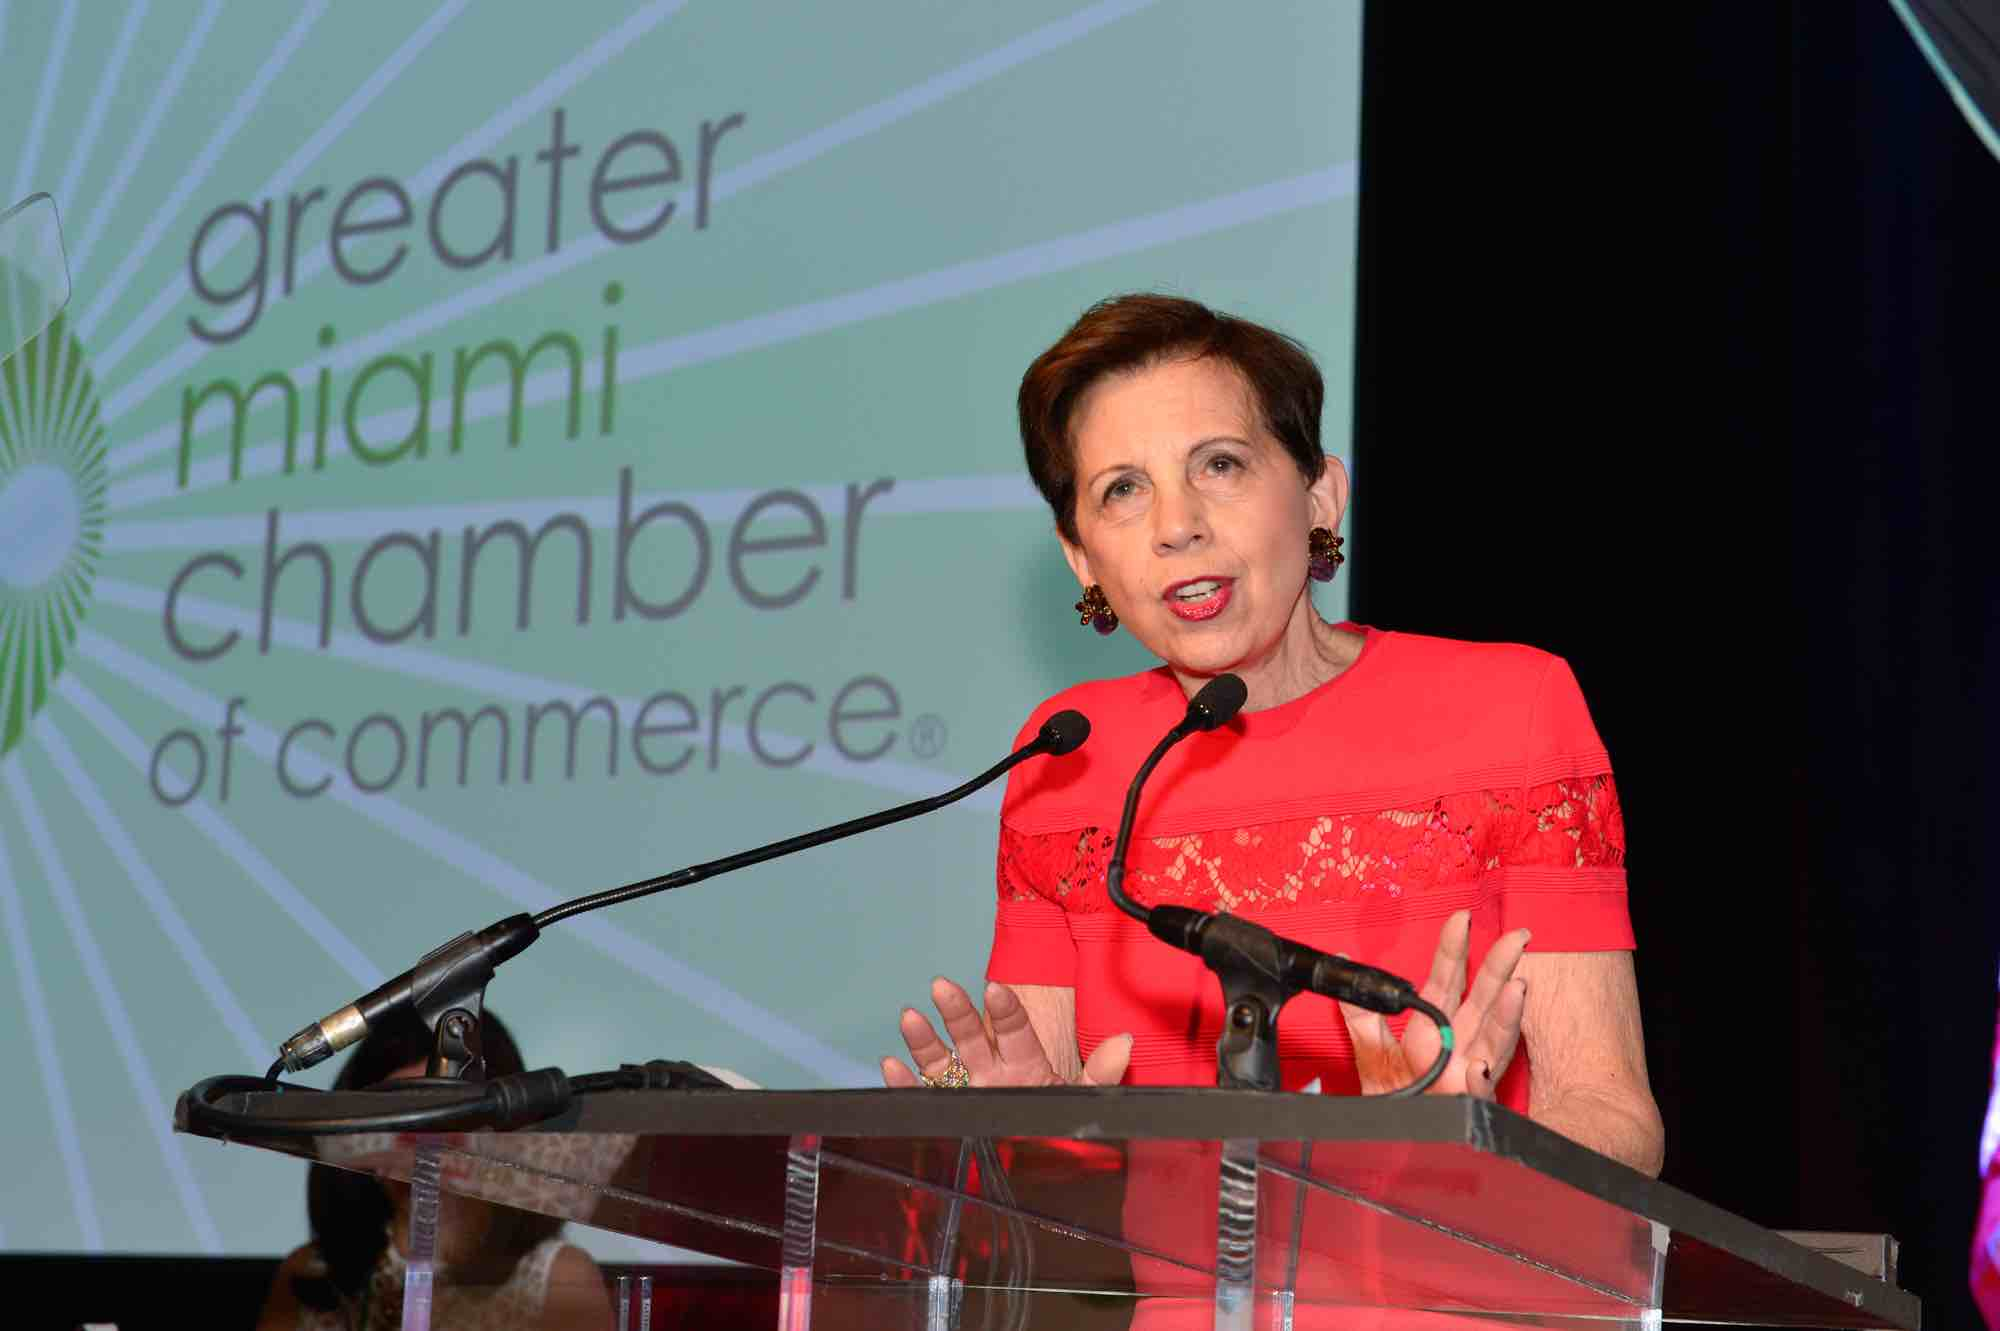 Powerful women like Adrienne Arsht use their influence in local and national issues